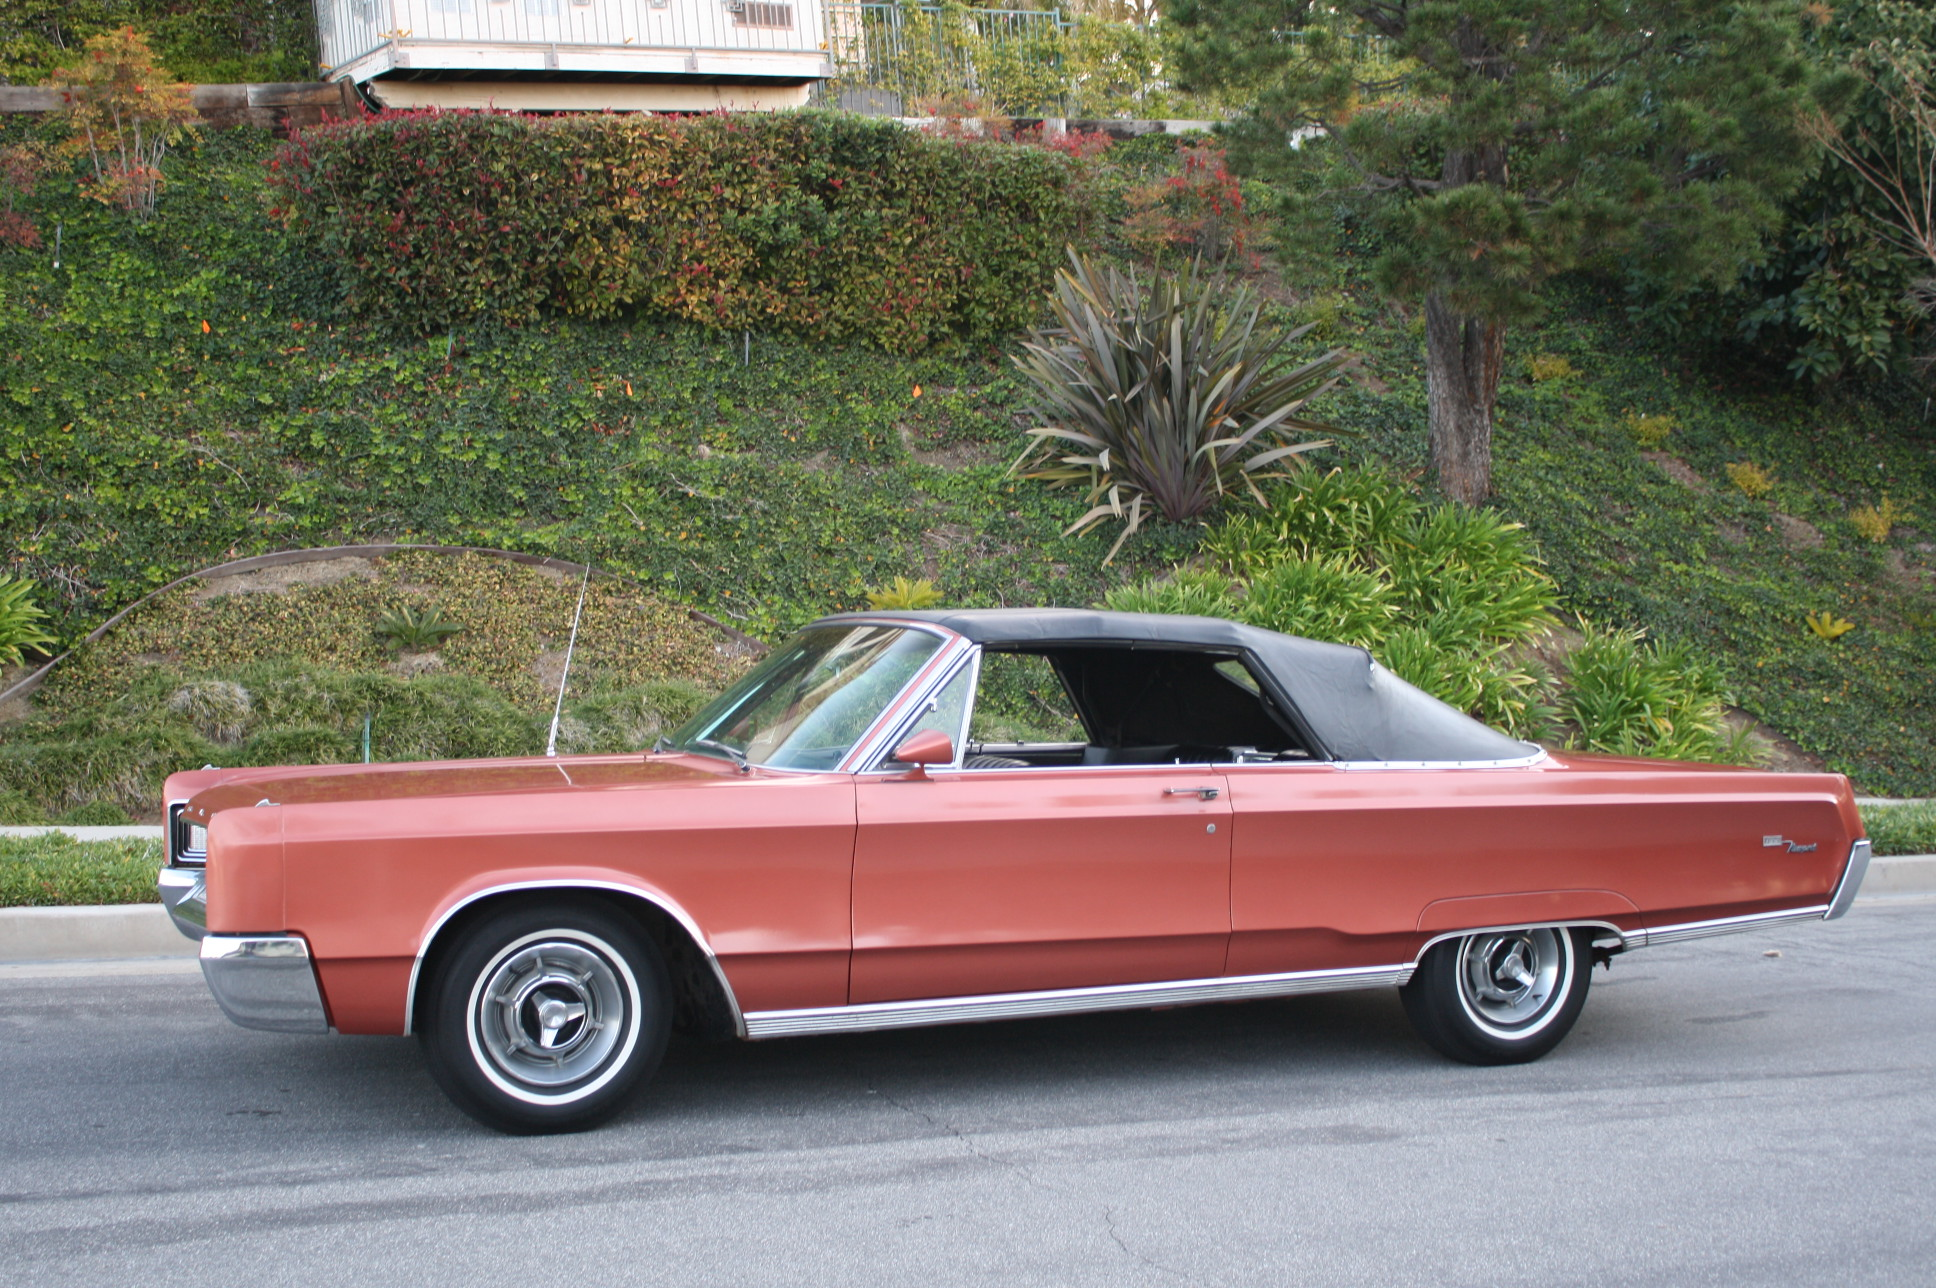 1967 CHRYSLER CONVERTIBLE | The Vault Classic Cars